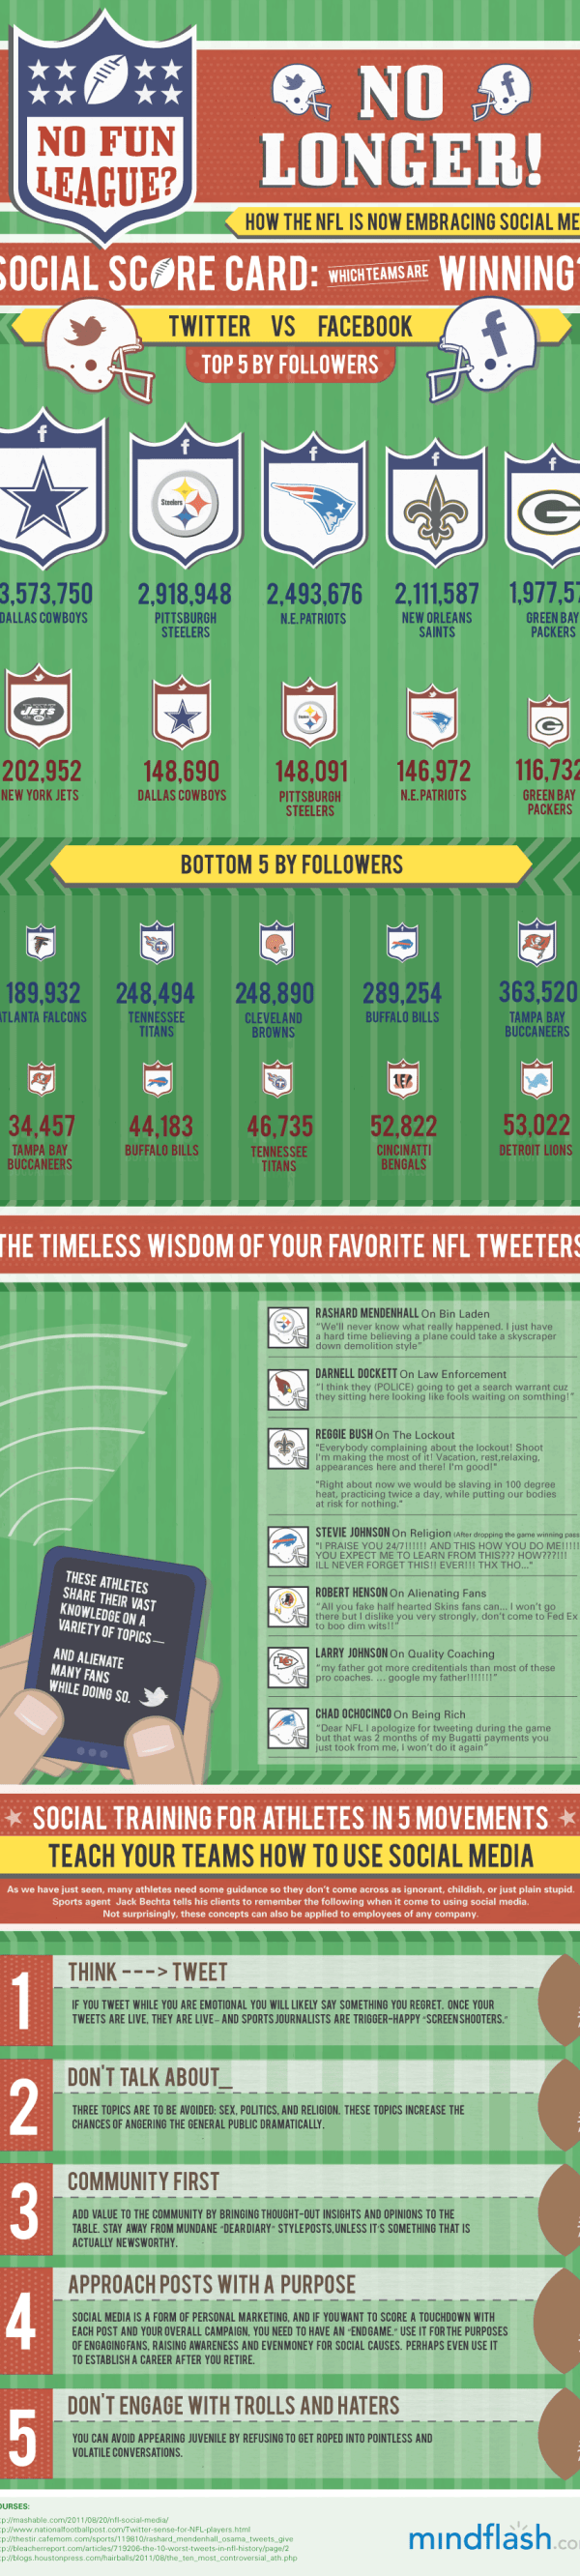 nfl socialmedia The NFL Finally Embraces Social Media [infographic]